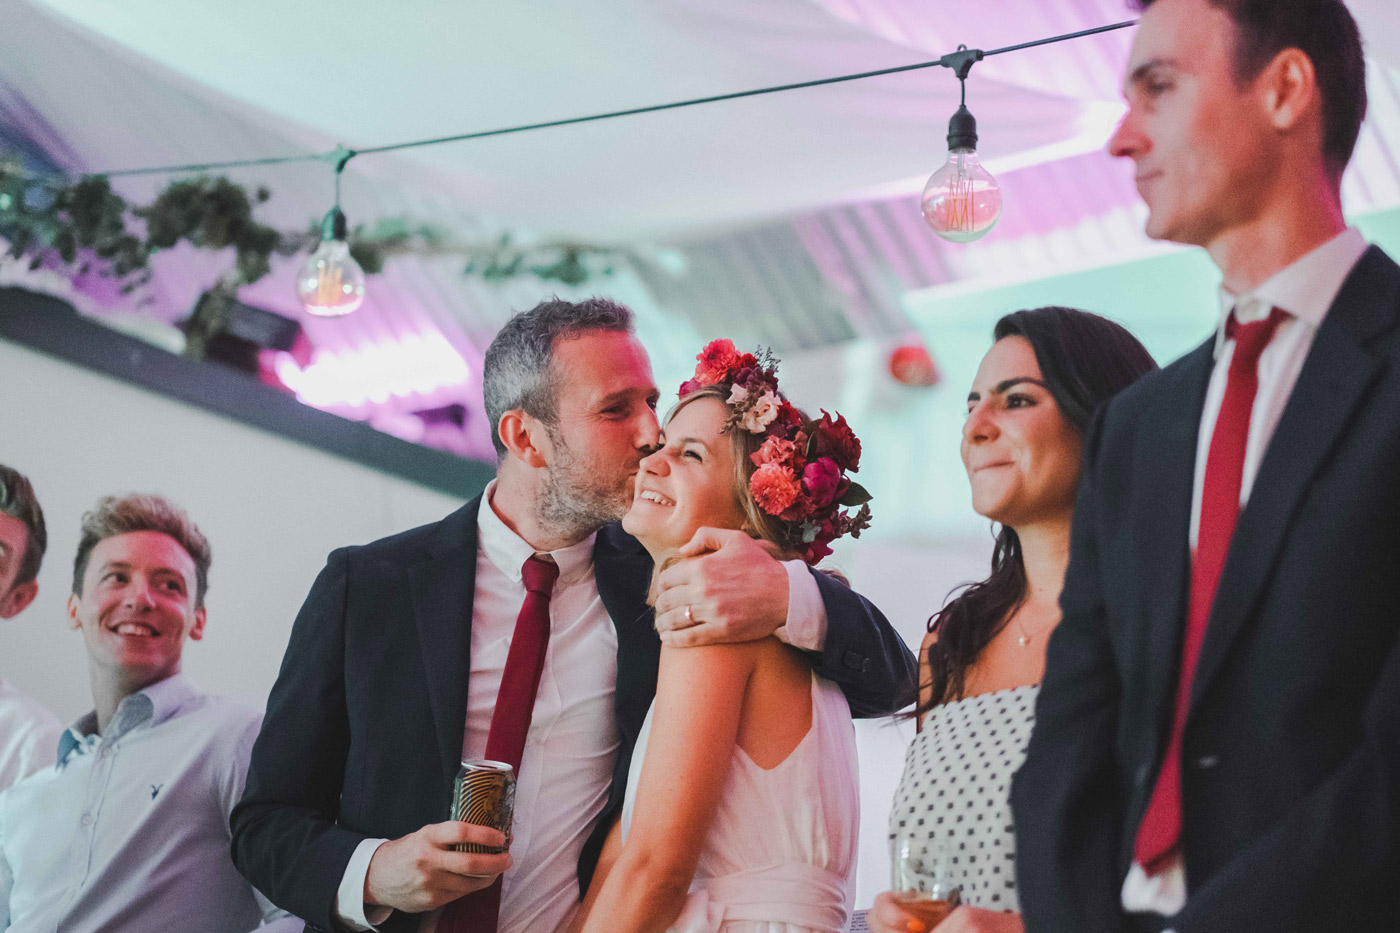 London wedding photography at London fields brewery